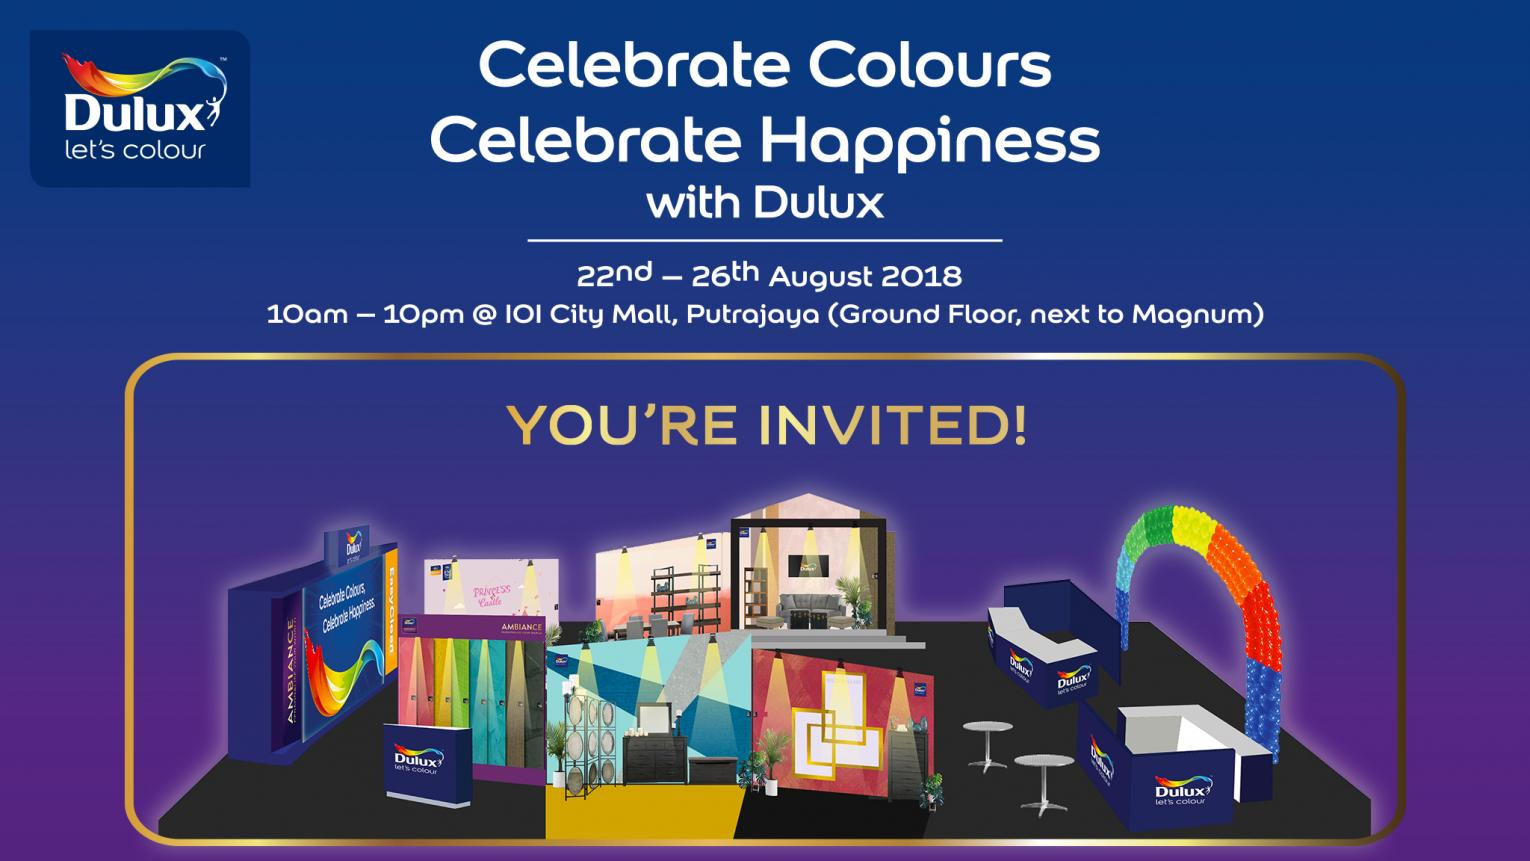 celebrate_colour_celebrate_happiness_ioi_mall_event_header_v2.2